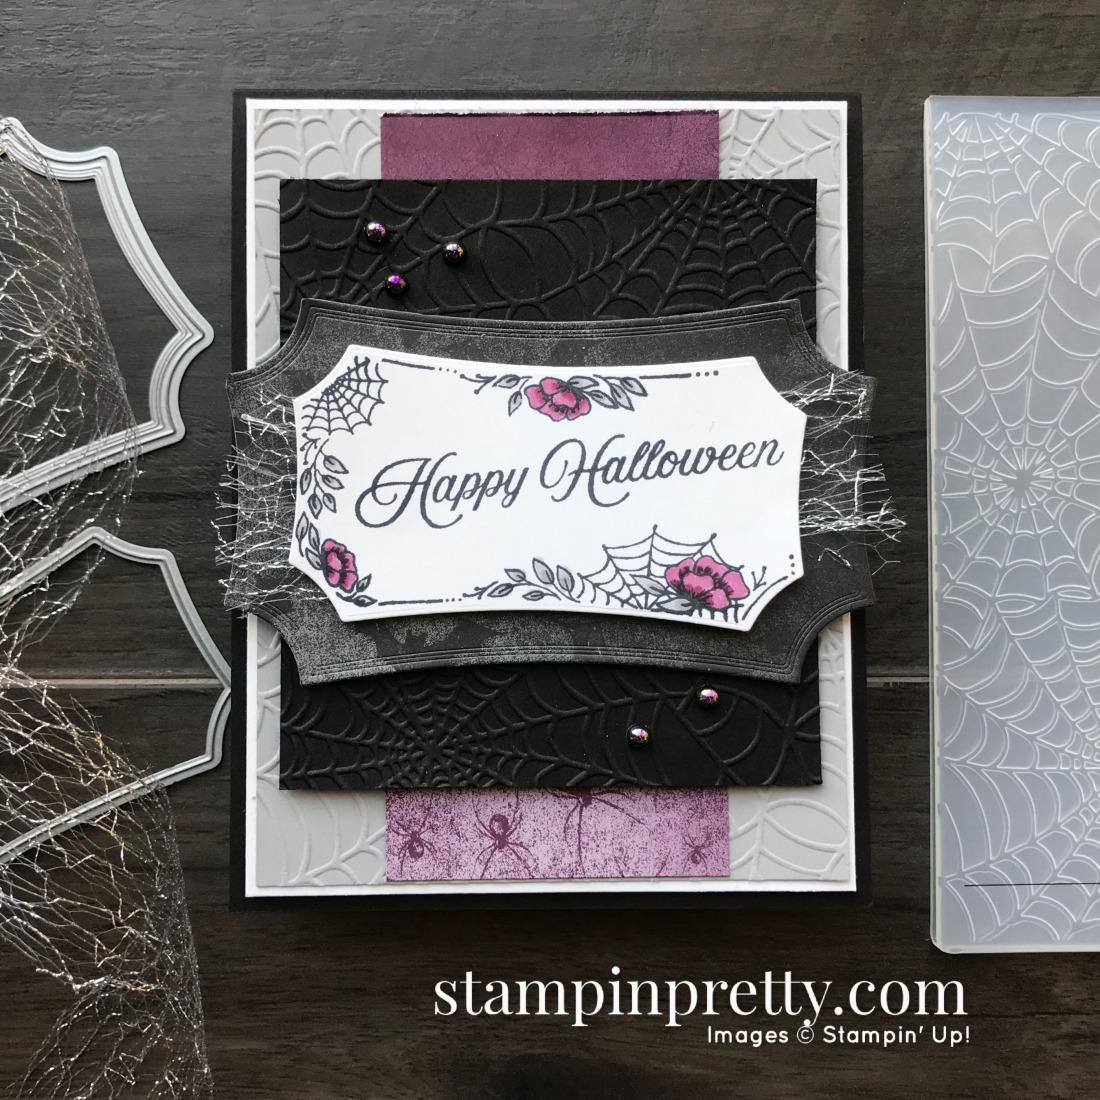 Stampin Up Halloween Card Ideas 2020 Happy Halloween Card: Stampin' Up! Magic In This Night! | Stampin